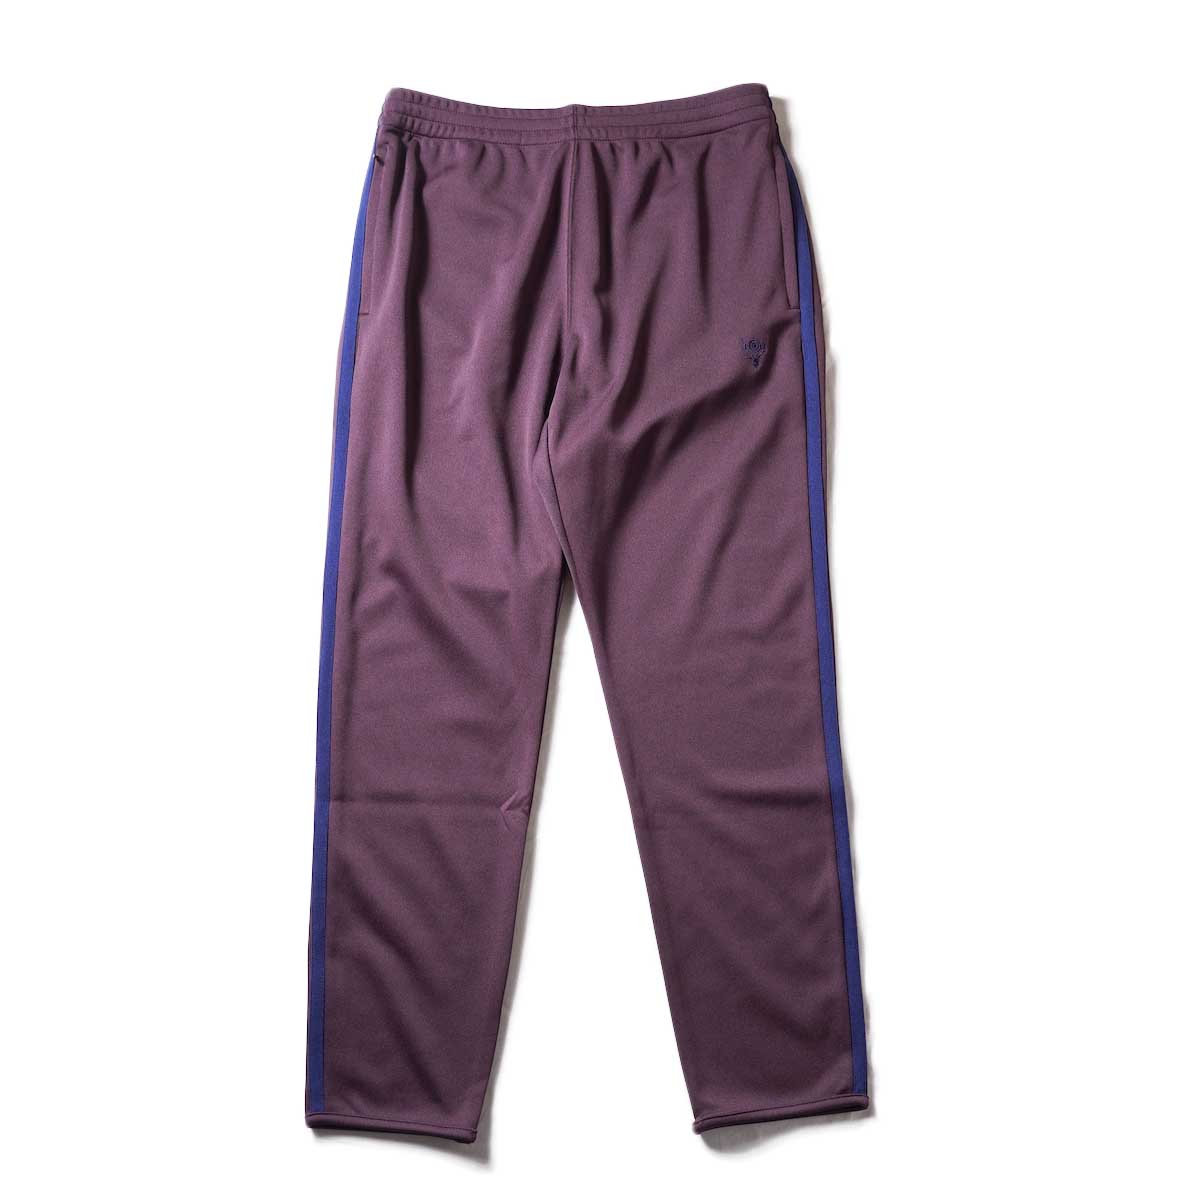 South2 West8 / Trainer Pants - Poly Smooth (Burgundy)正面